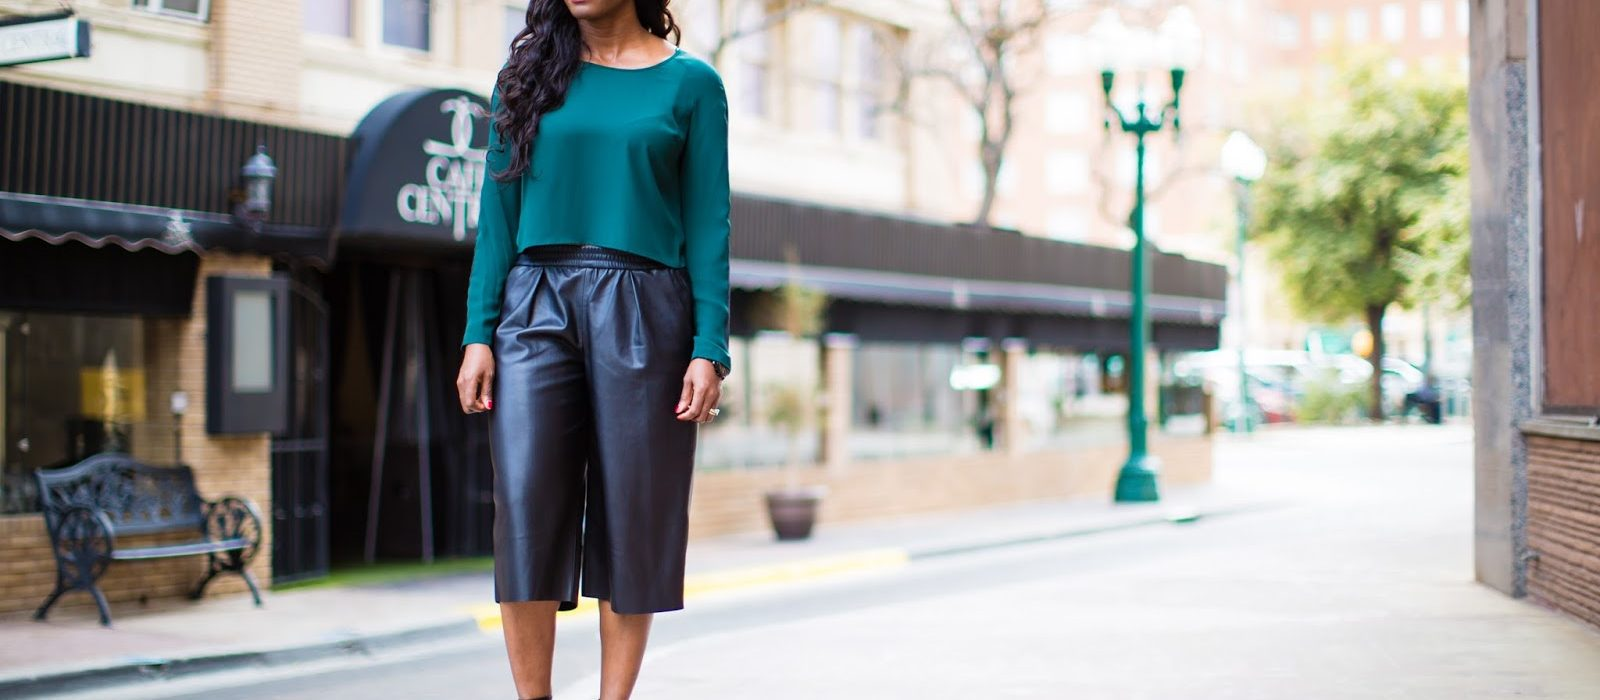 The big leather culottes come back